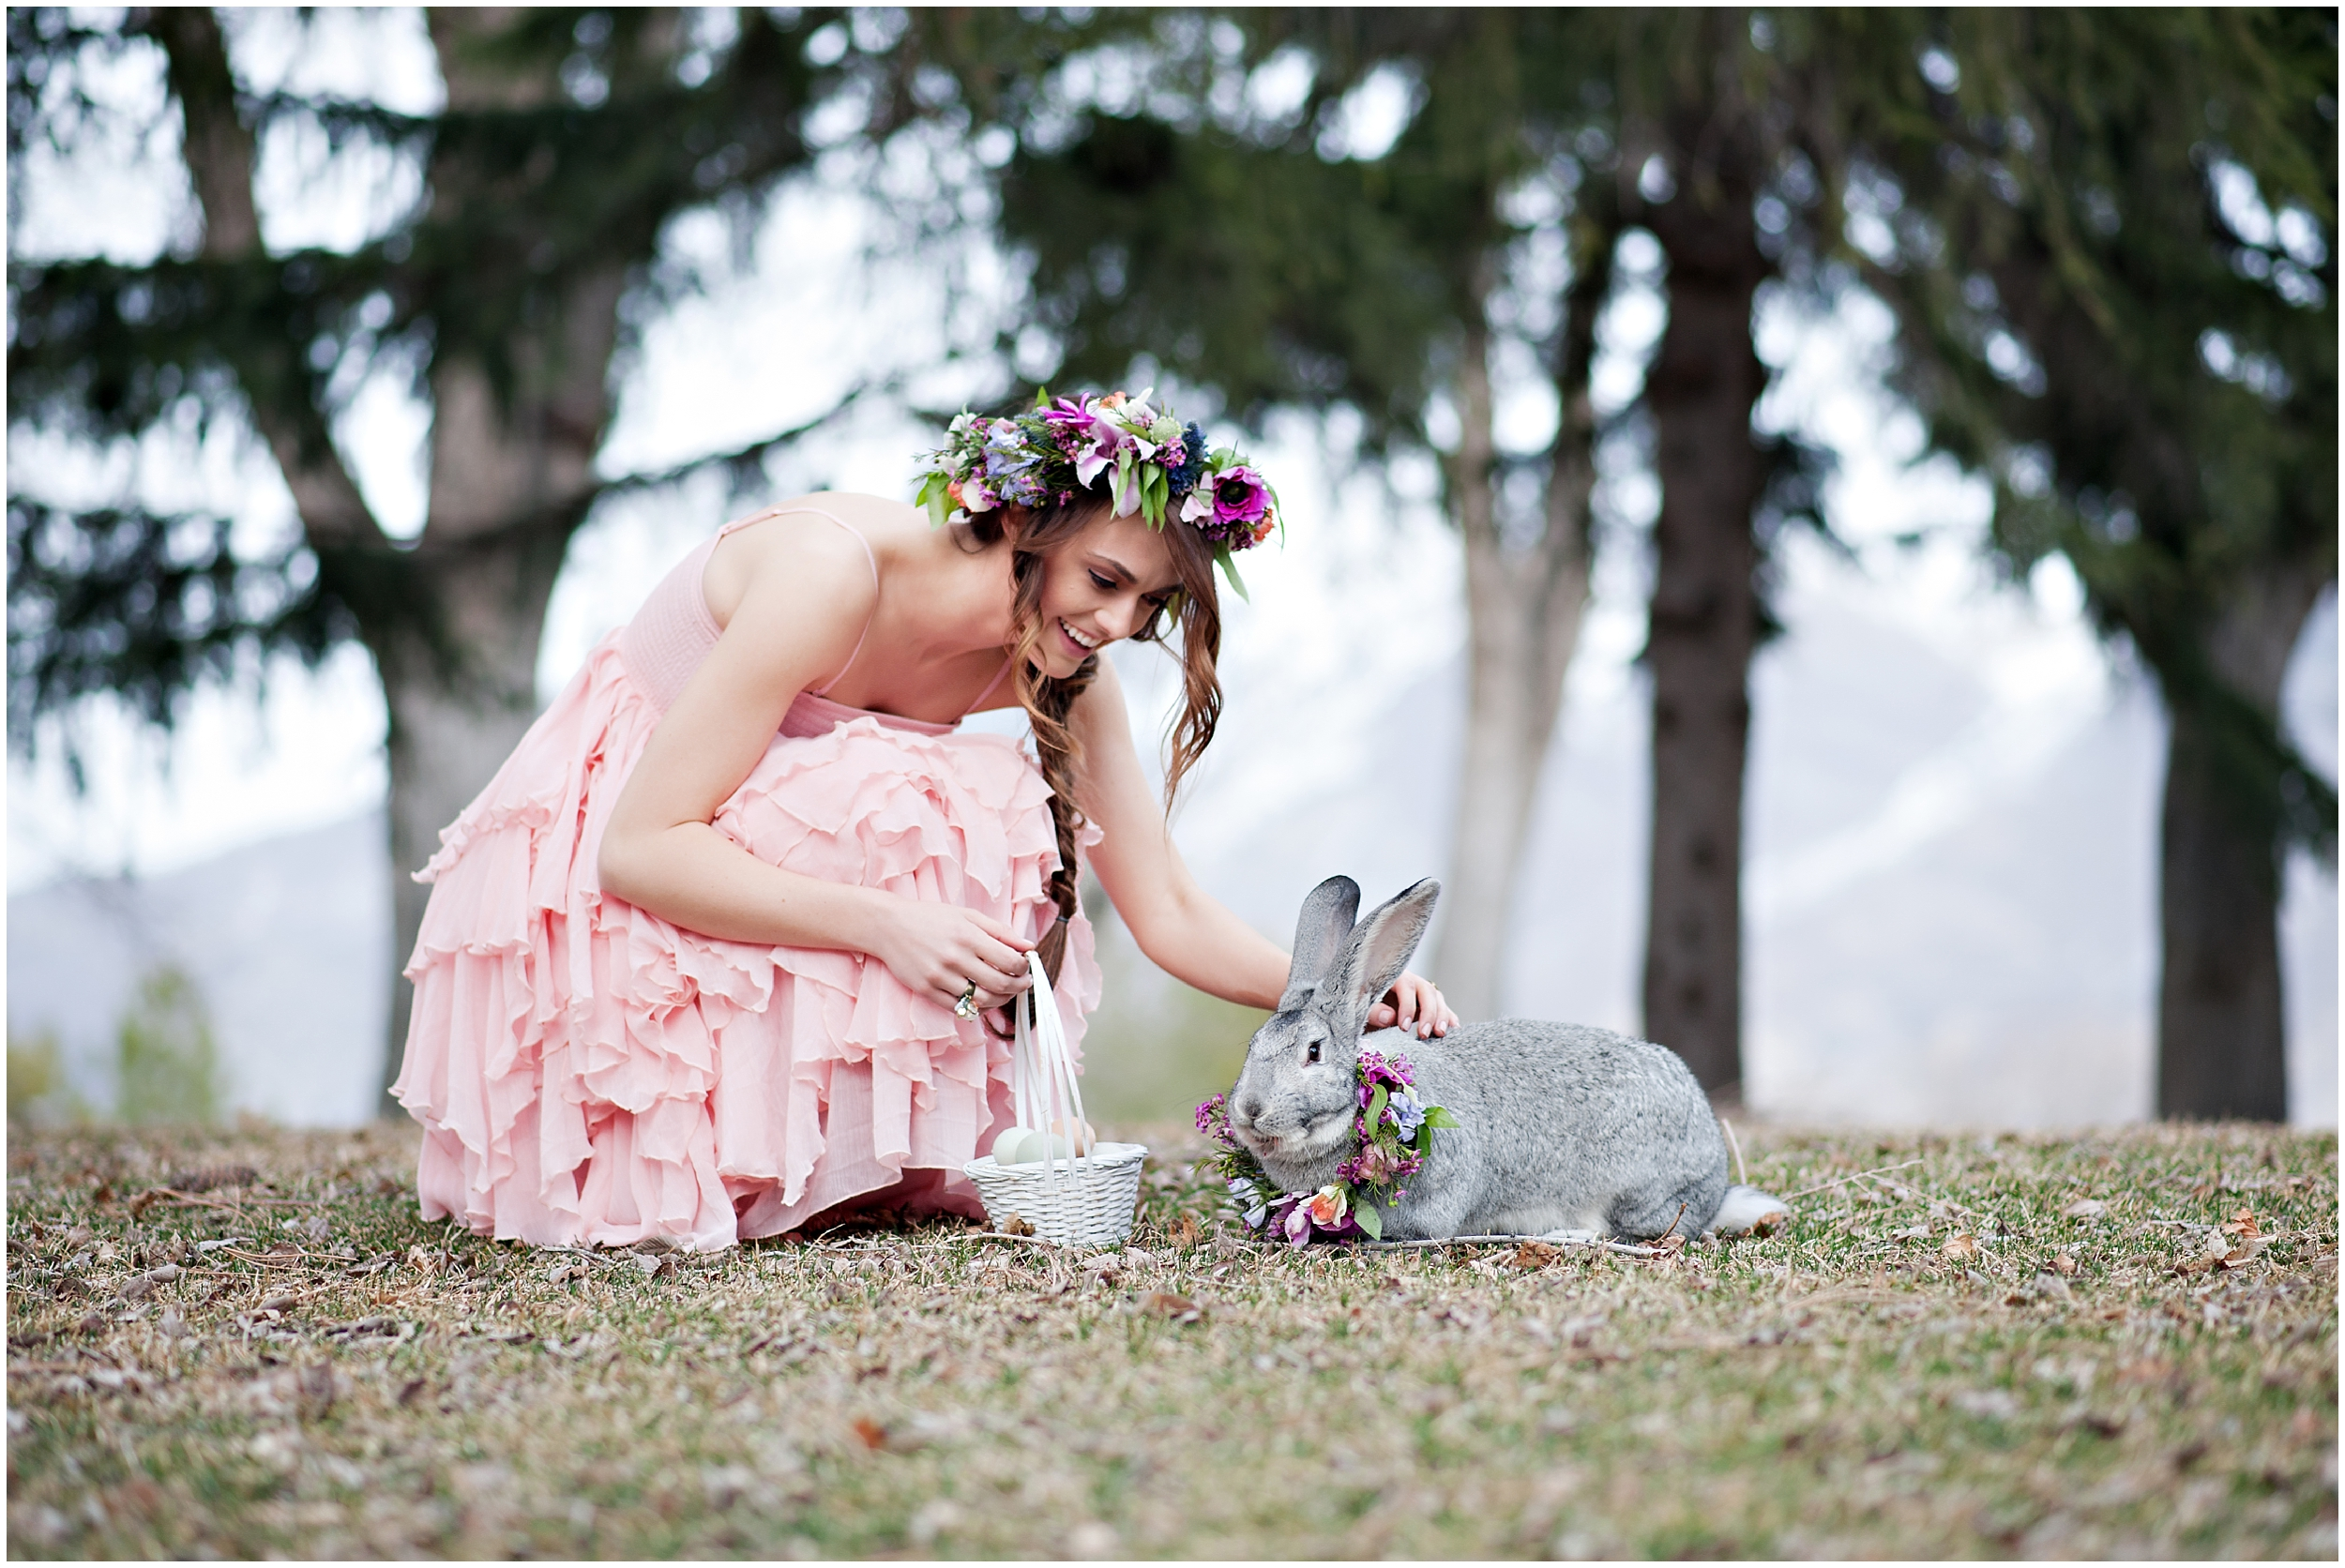 Spring bridal, bunny halo, floral halo, spring blooms, Calie rose flowers, whimsical bridals, Easter bunny, Utah wedding photographers, Utah wedding photographer, Utah wedding photography, Utah county wedding photography, Utah county wedding photographer, salt lake city photographers, salt lake city wedding photography, salt lake photographers, salt lake city photographers, photographers in Utah, Utah photography, photography Utah, photographer Utah, Kristina Curtis photography, Kristina Curtis Photographer, www.kristinacurtisphotography.com